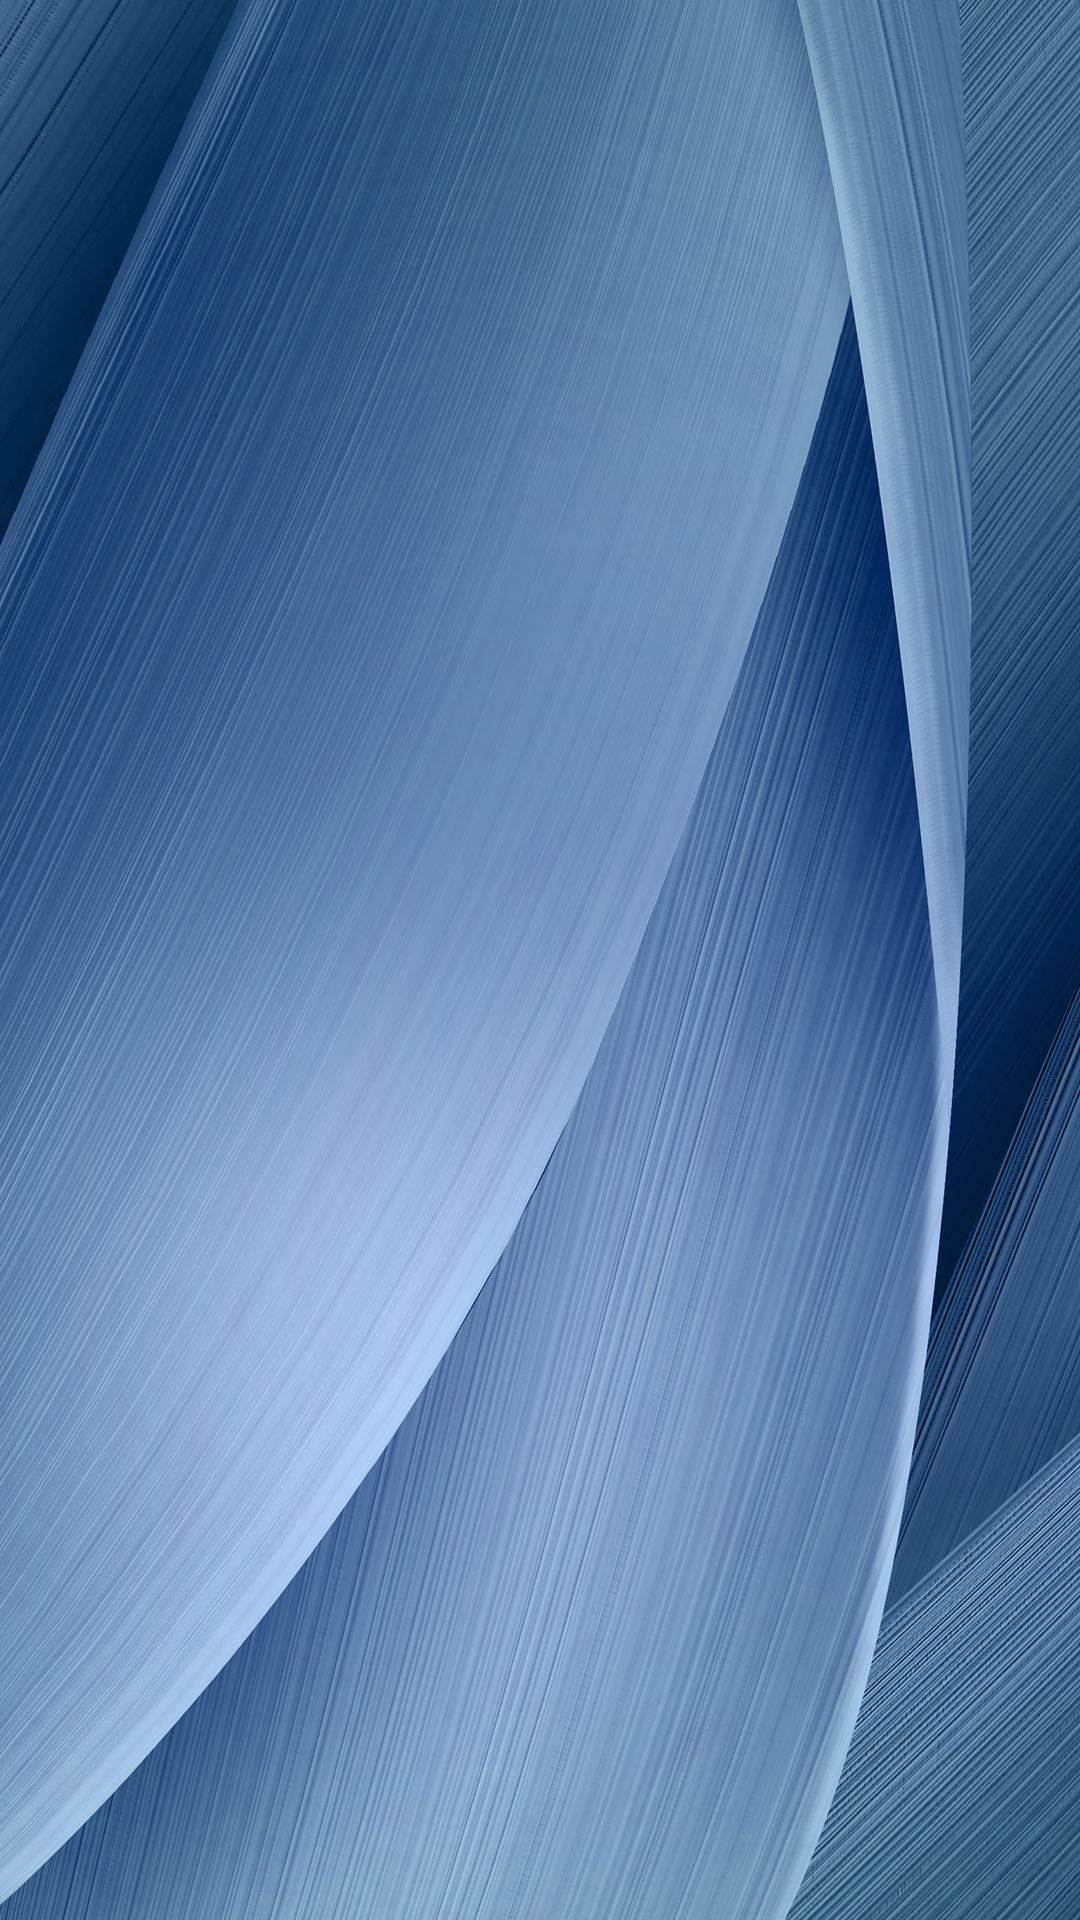 1080x1920 Stock Blue Abstract Shapes Android Wallpaper ...